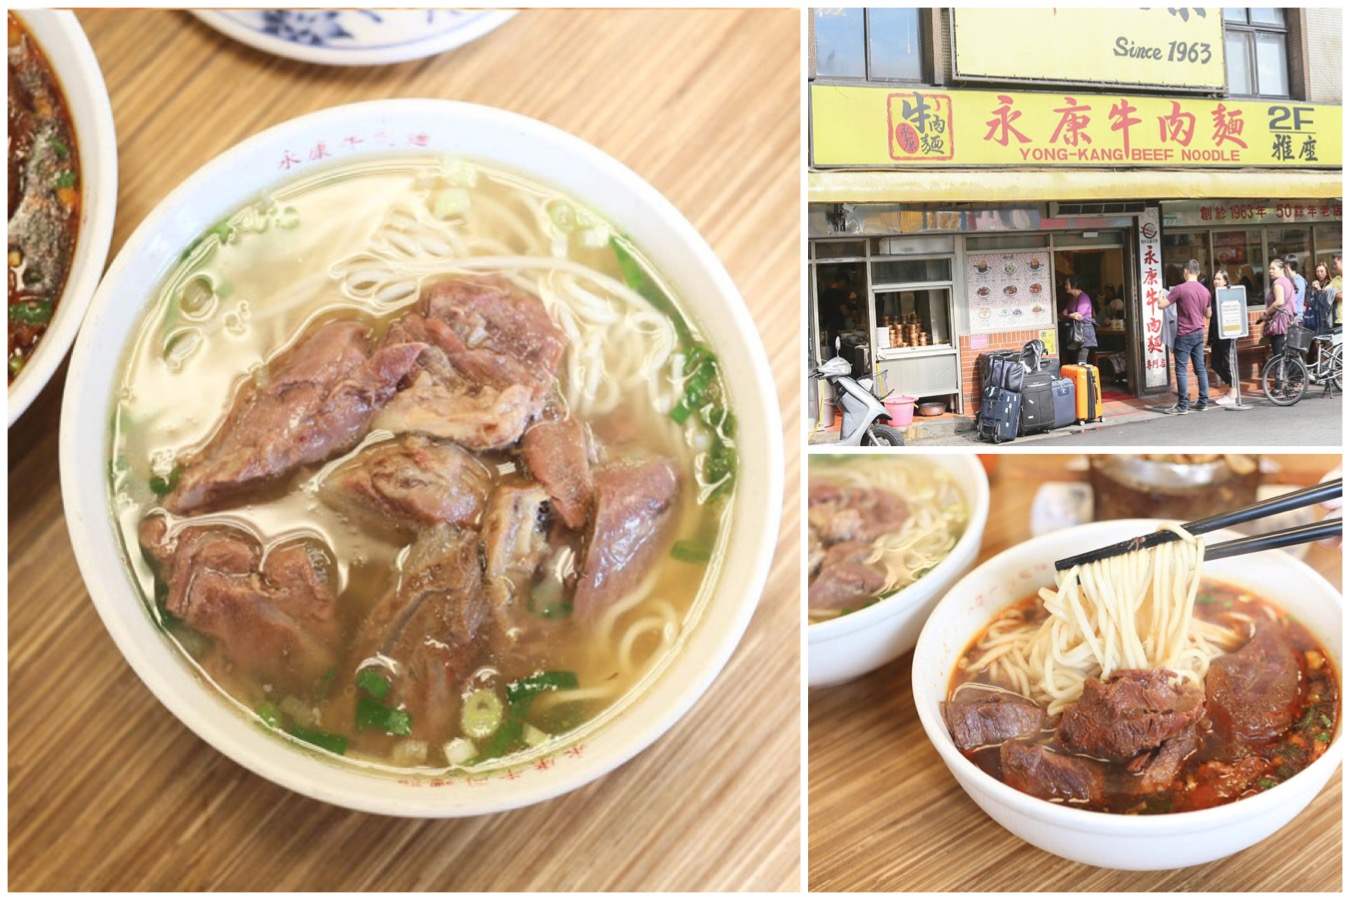 Yong Kang Beef Noodles 永康牛肉麺館 - One Of The Best Taiwanese Beef Noodles In Taipei, With Michelin Bib Gourmand